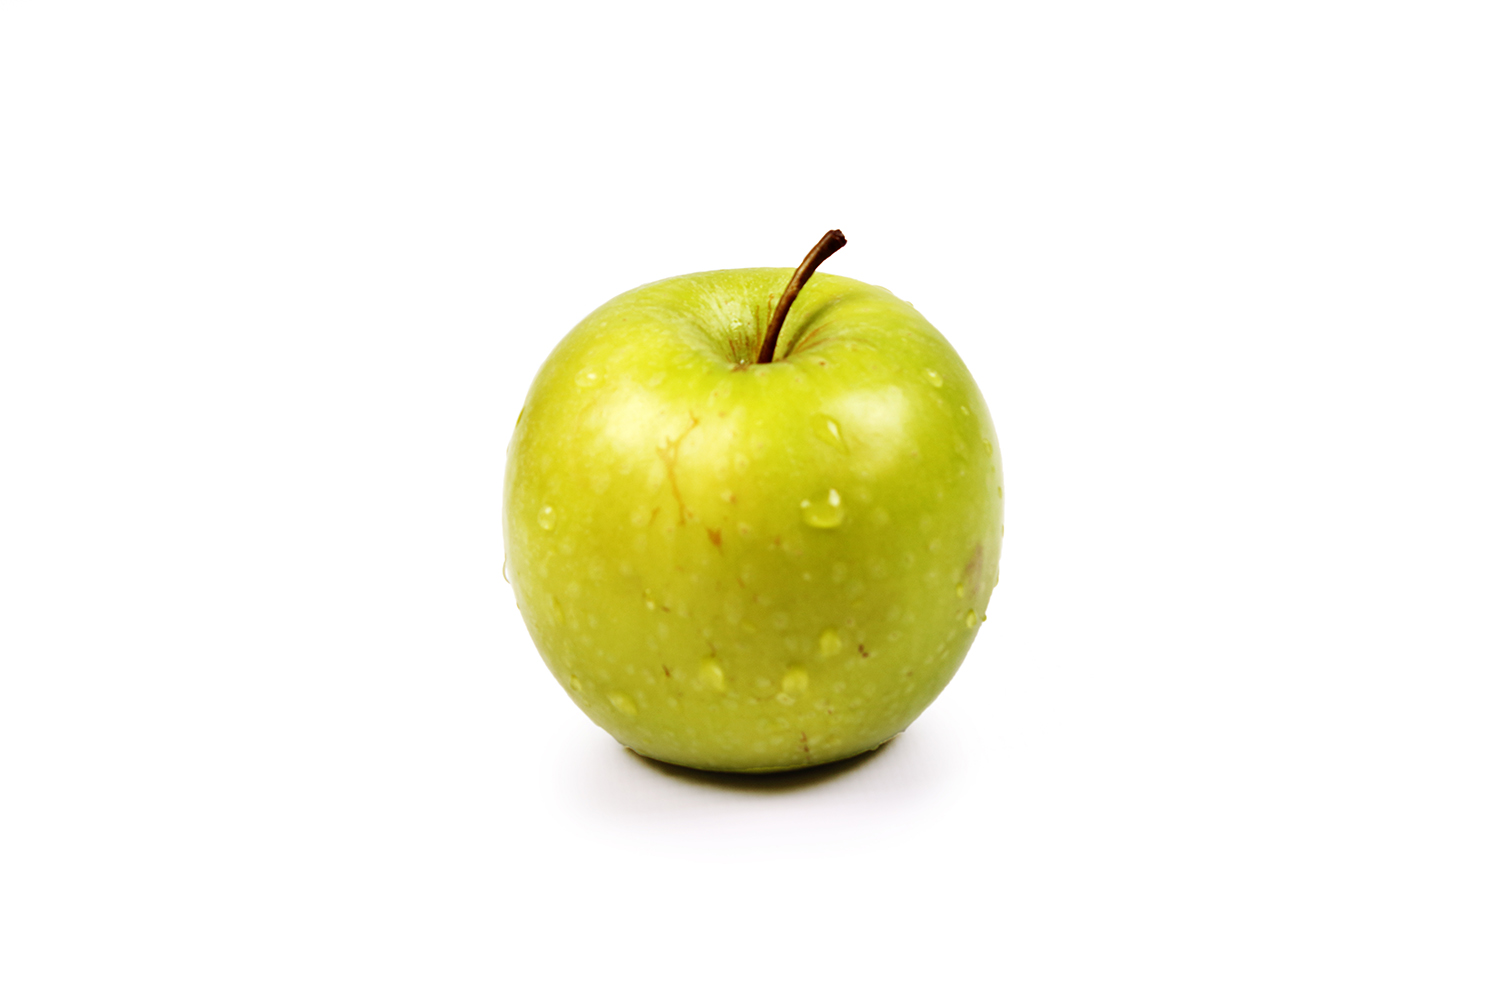 One green apple on isolated white background